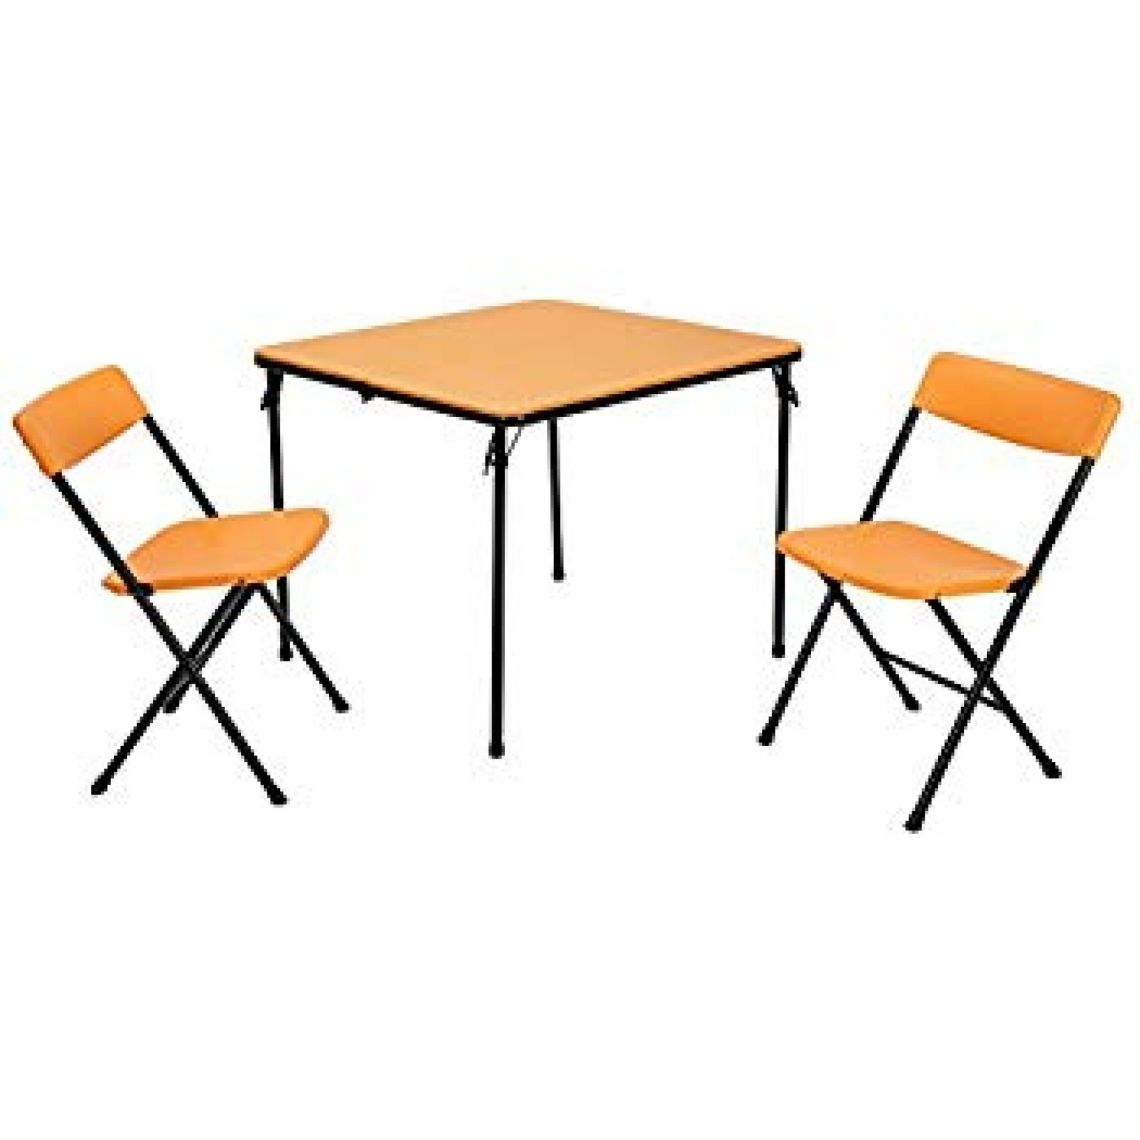 Amazon.com: Cosco Products COSCO 3 Piece Indoor Outdoor Center Fold Table and 2 Chairs Tailgate Set, Orange, Black Frame: Kitchen & Dining